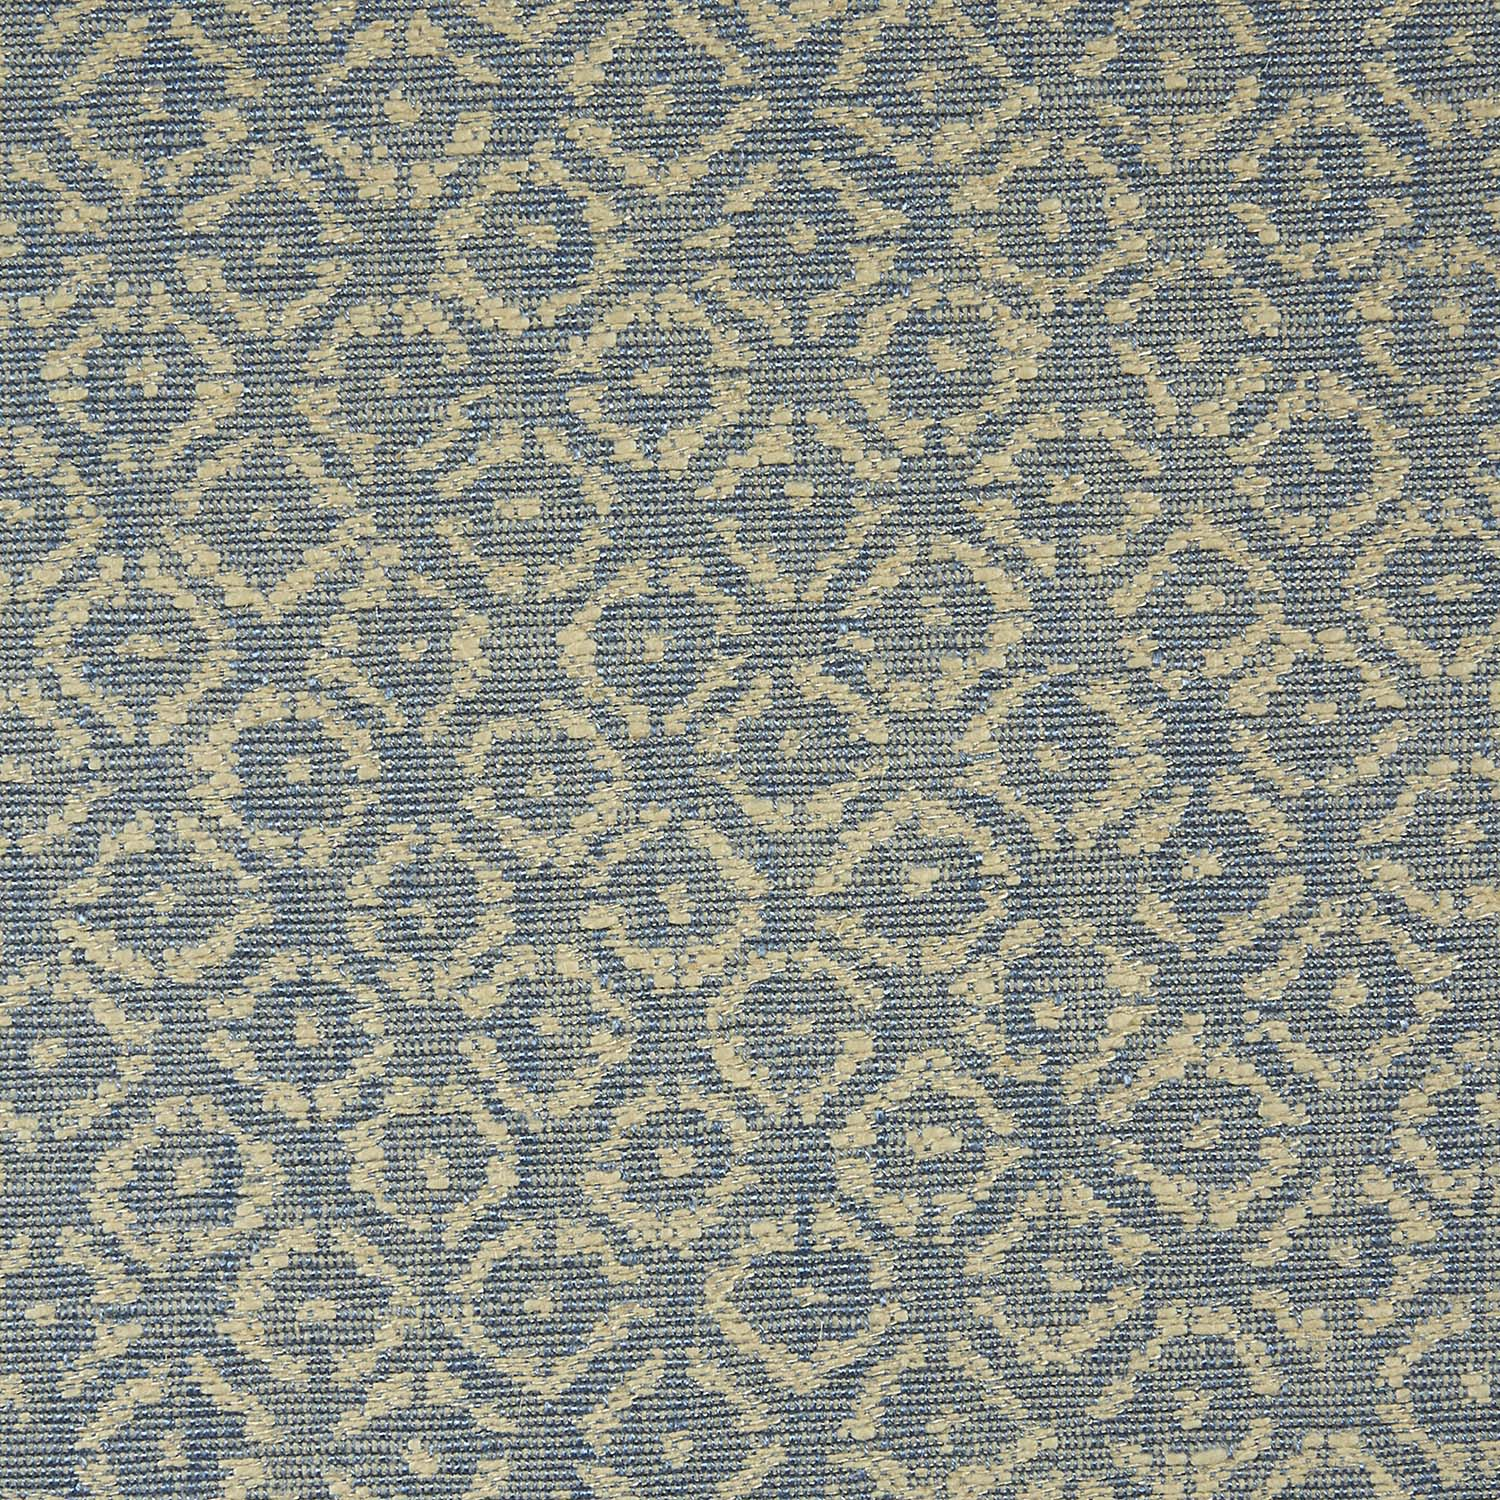 <p><strong>ALBEMARLE</strong>blue 1600-06<a href=/the-langham-collection/albemarle-blue-1600-06>More →</a></p>